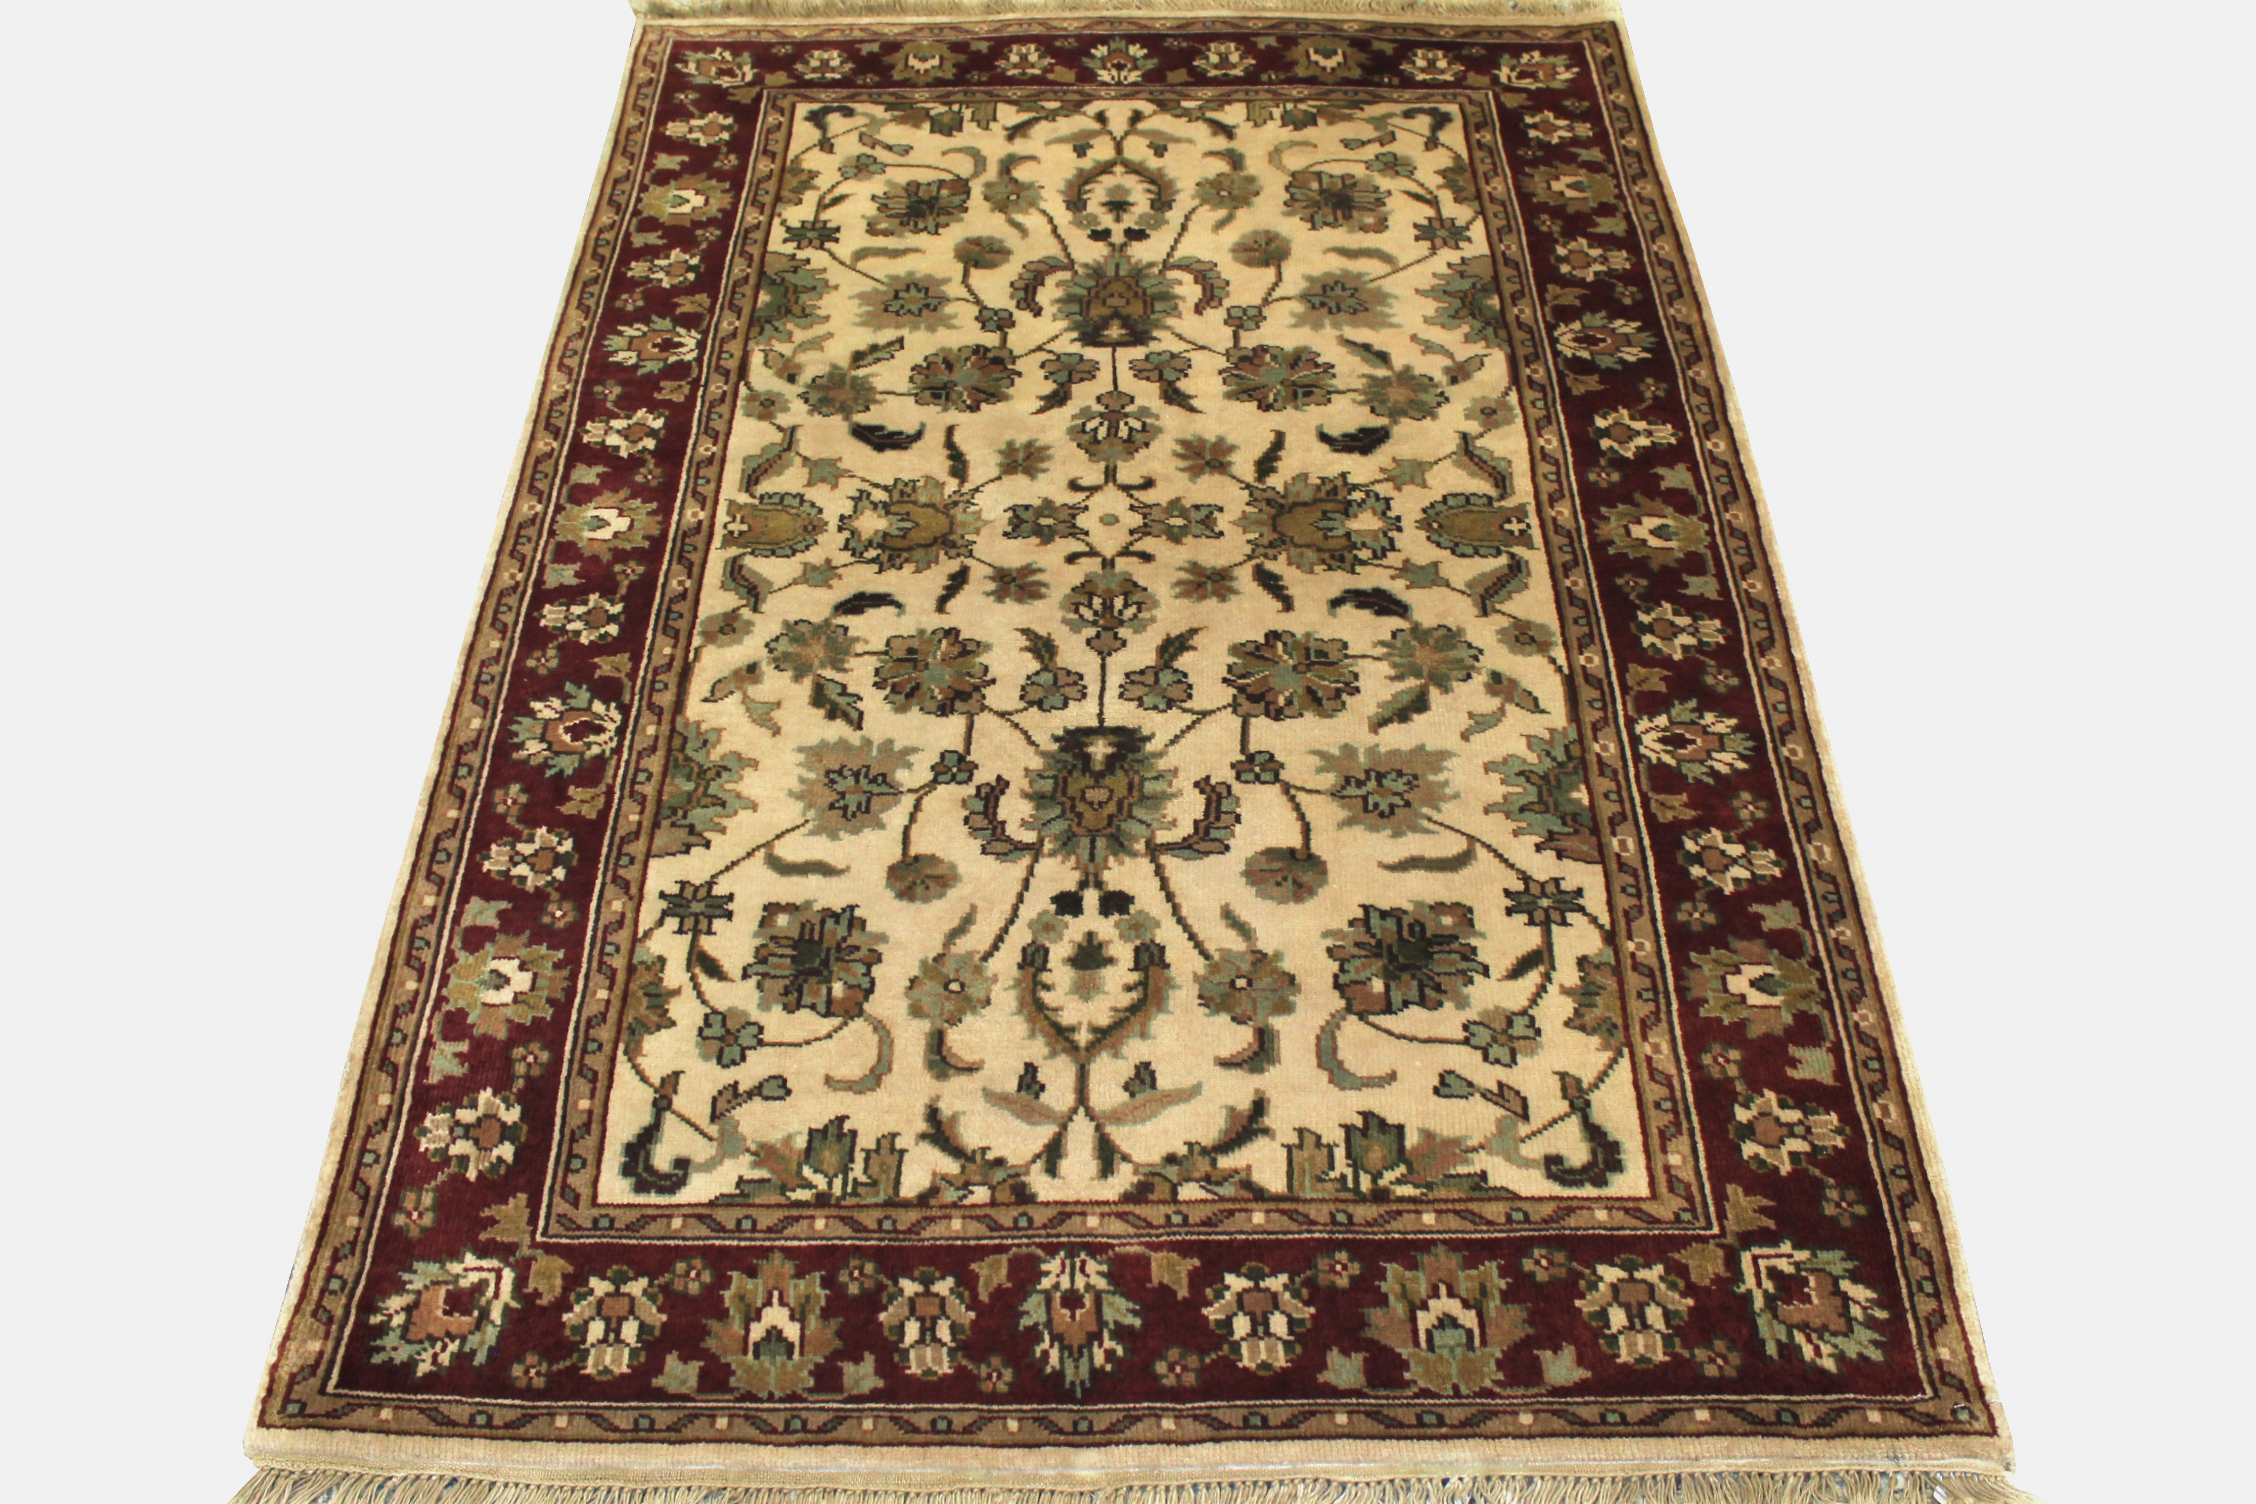 4x6 Traditional Hand Knotted Wool Area Rug - MR0058